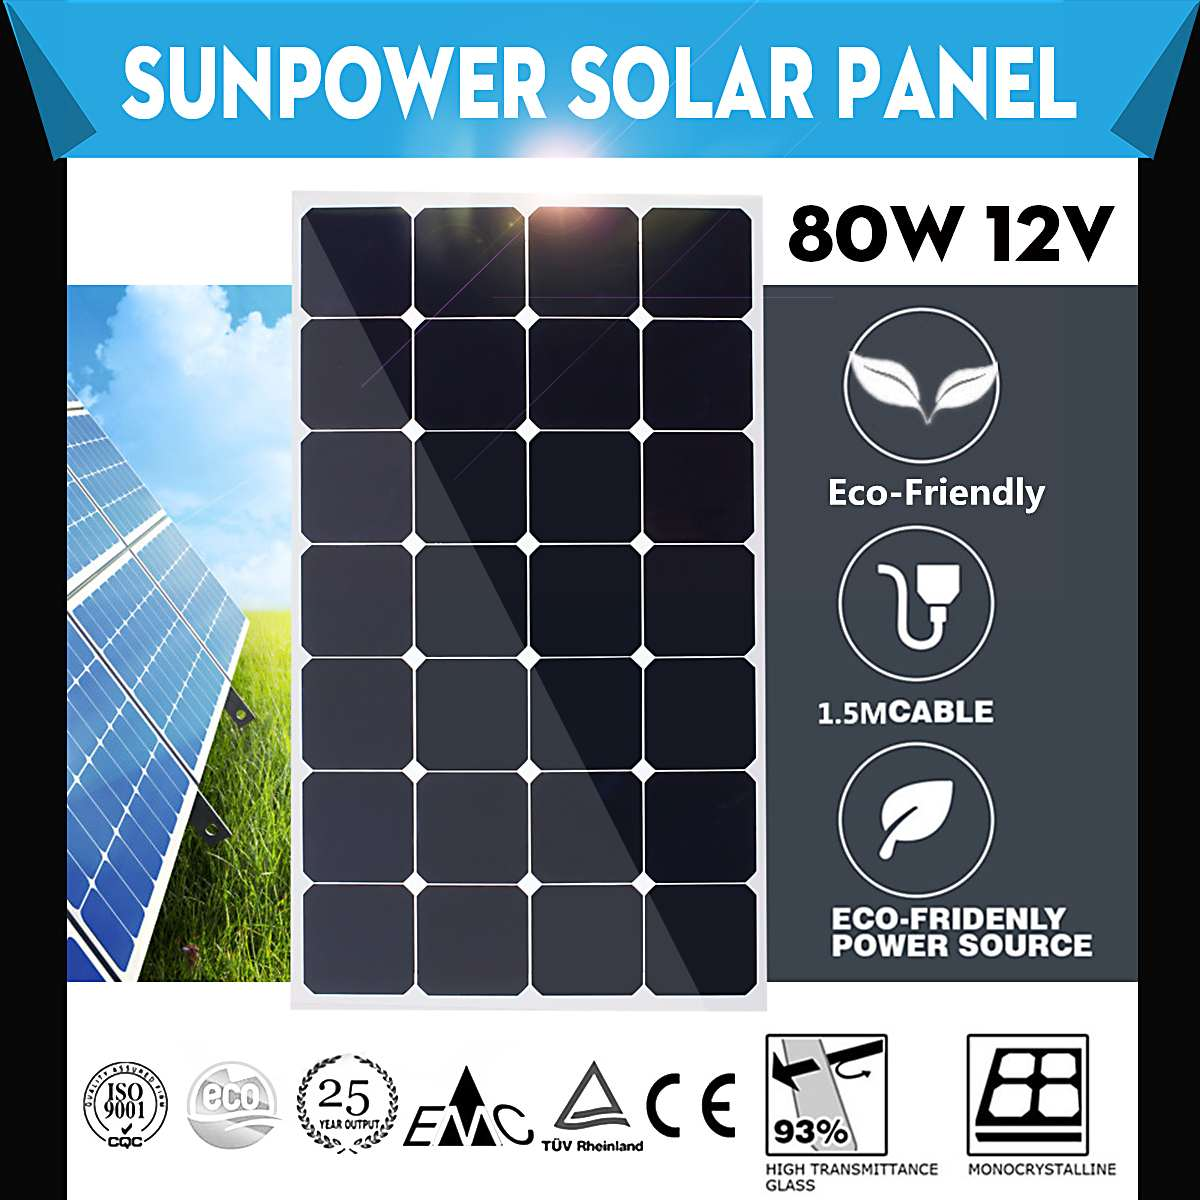 80W 12V 880mm x 540mm x 2.5mm Photovoltaic semi flexible Solar Panel With 3.M Cable